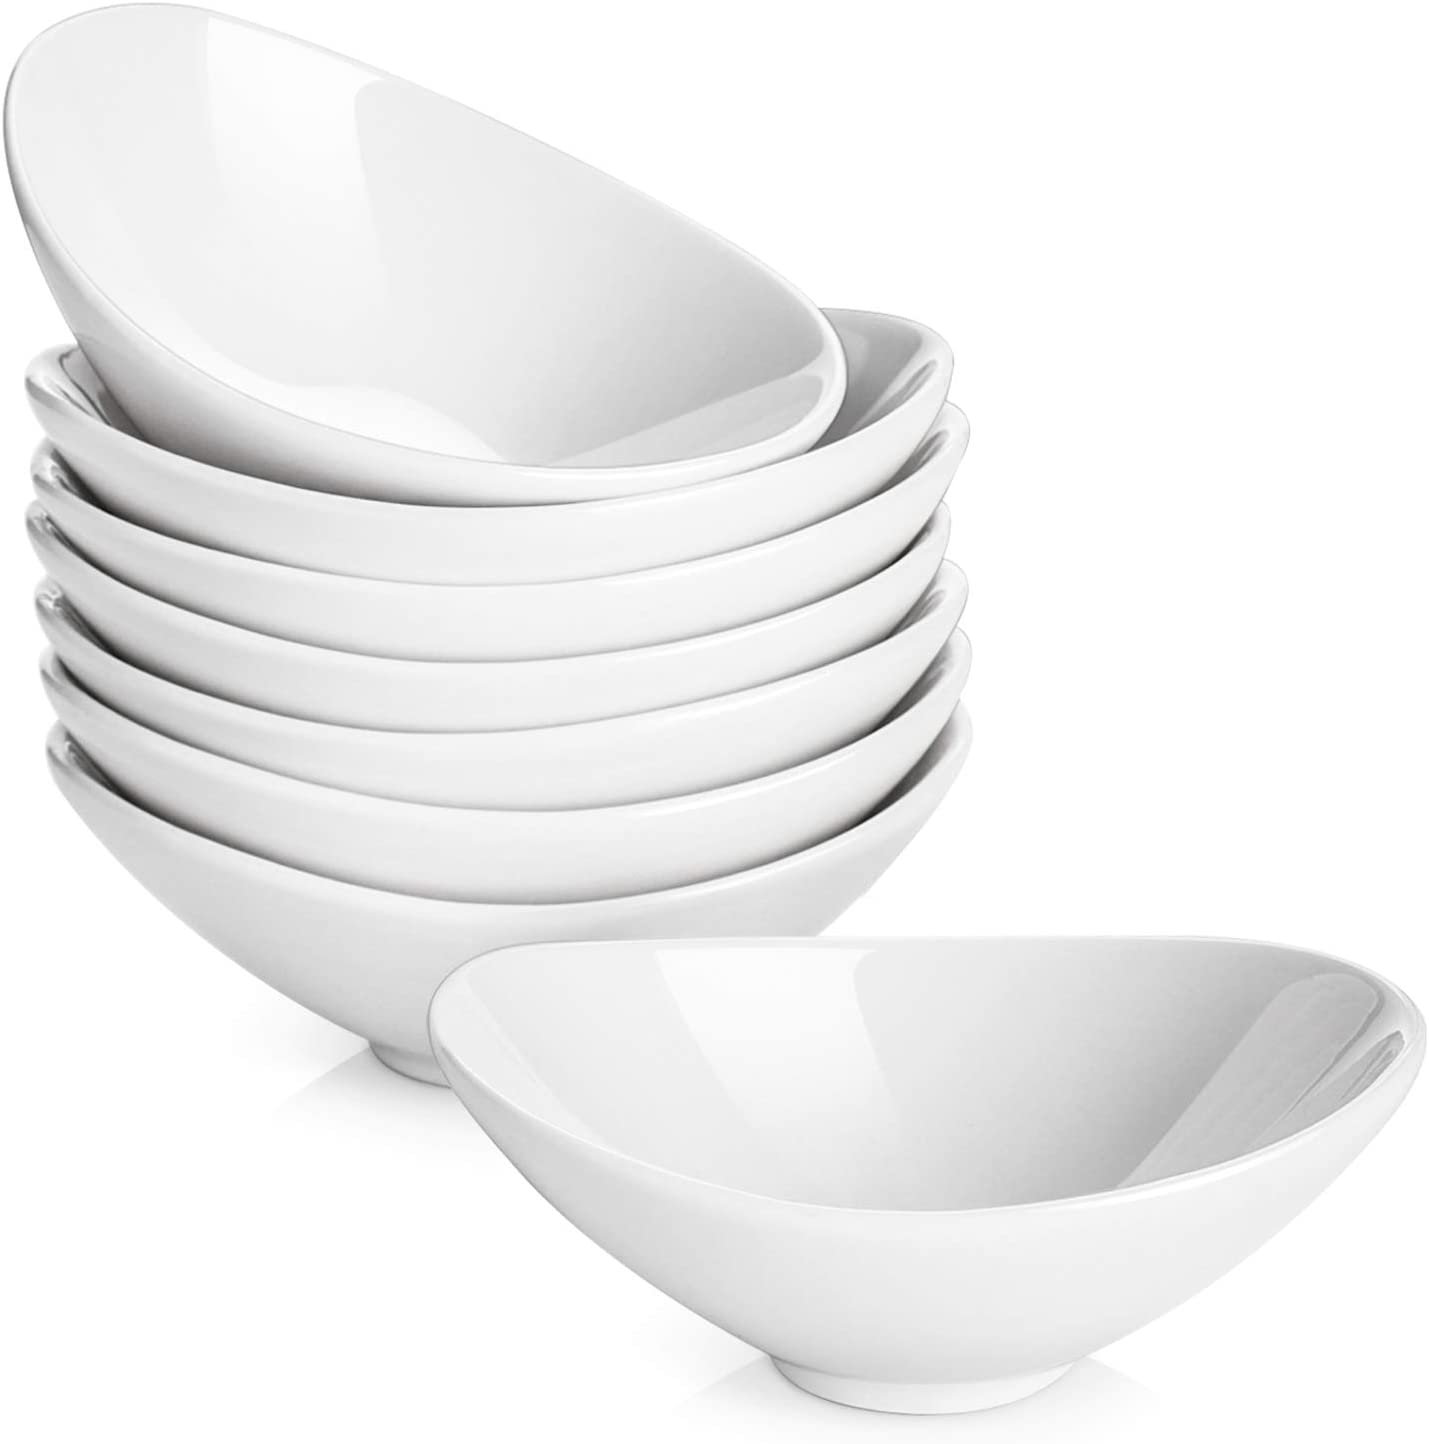 DOWAN Dip Bowls Set, 3 Oz Porcelain Dipping Sauce Bowls/Dishes for BBQ, Soy, Tomato Sauce, and Party Dinner, Set of 8, White